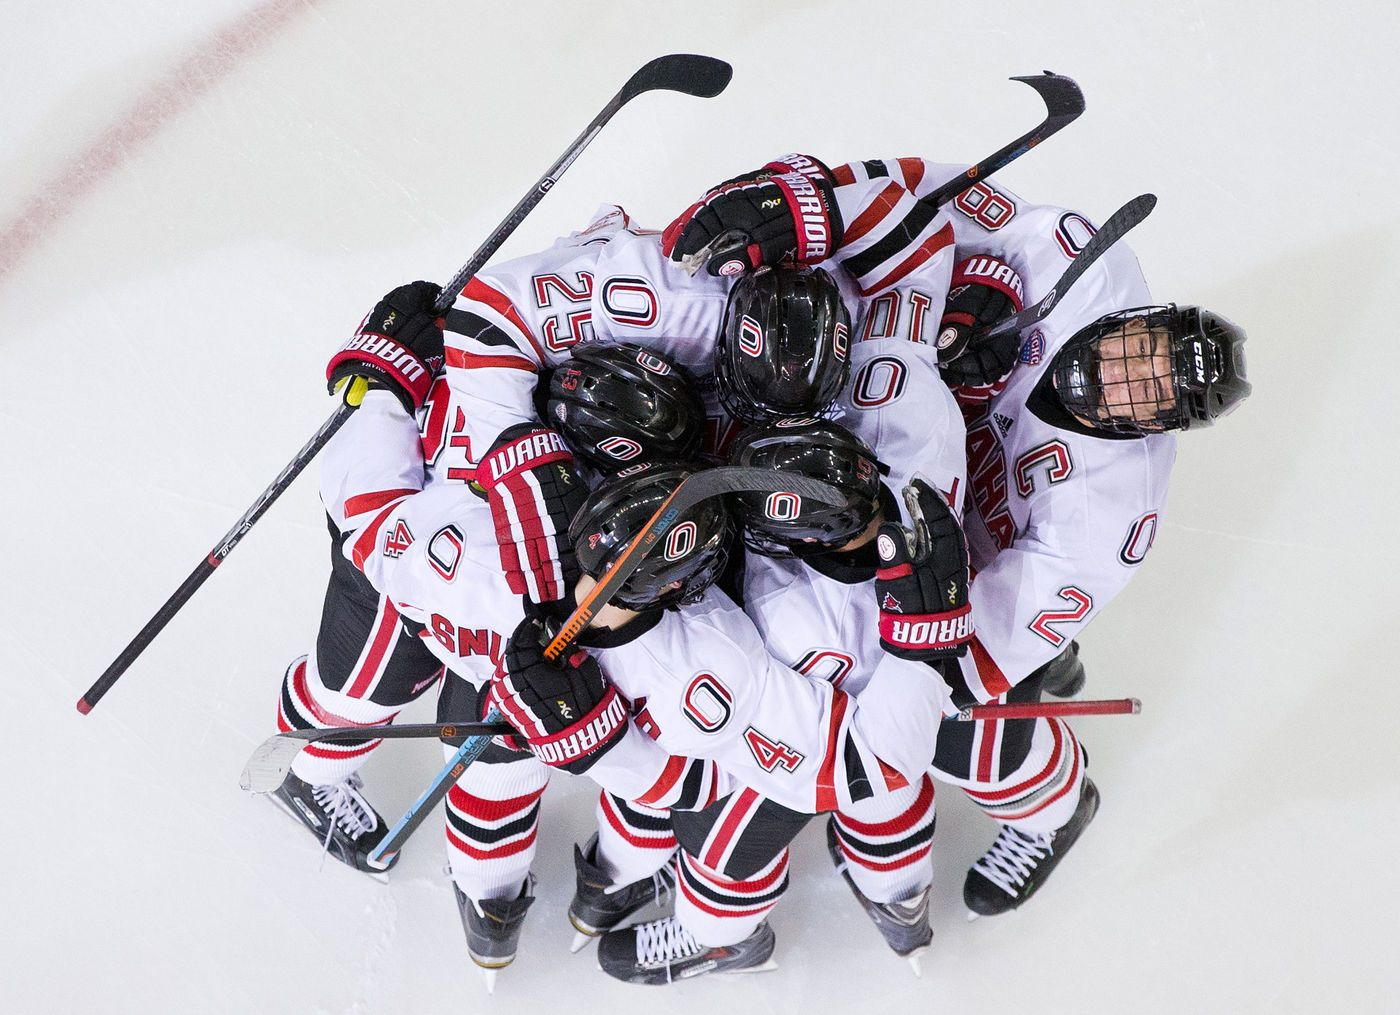 UNO 2, New Hampshire 1, OT: UNO's Jake Randolph and Tyler Vesel celebrate with the team after Randolph scored with a Vesel assist in the third period on Dec. 30, 2014. By: MARK DAVIS/THE WORLD-HERALD